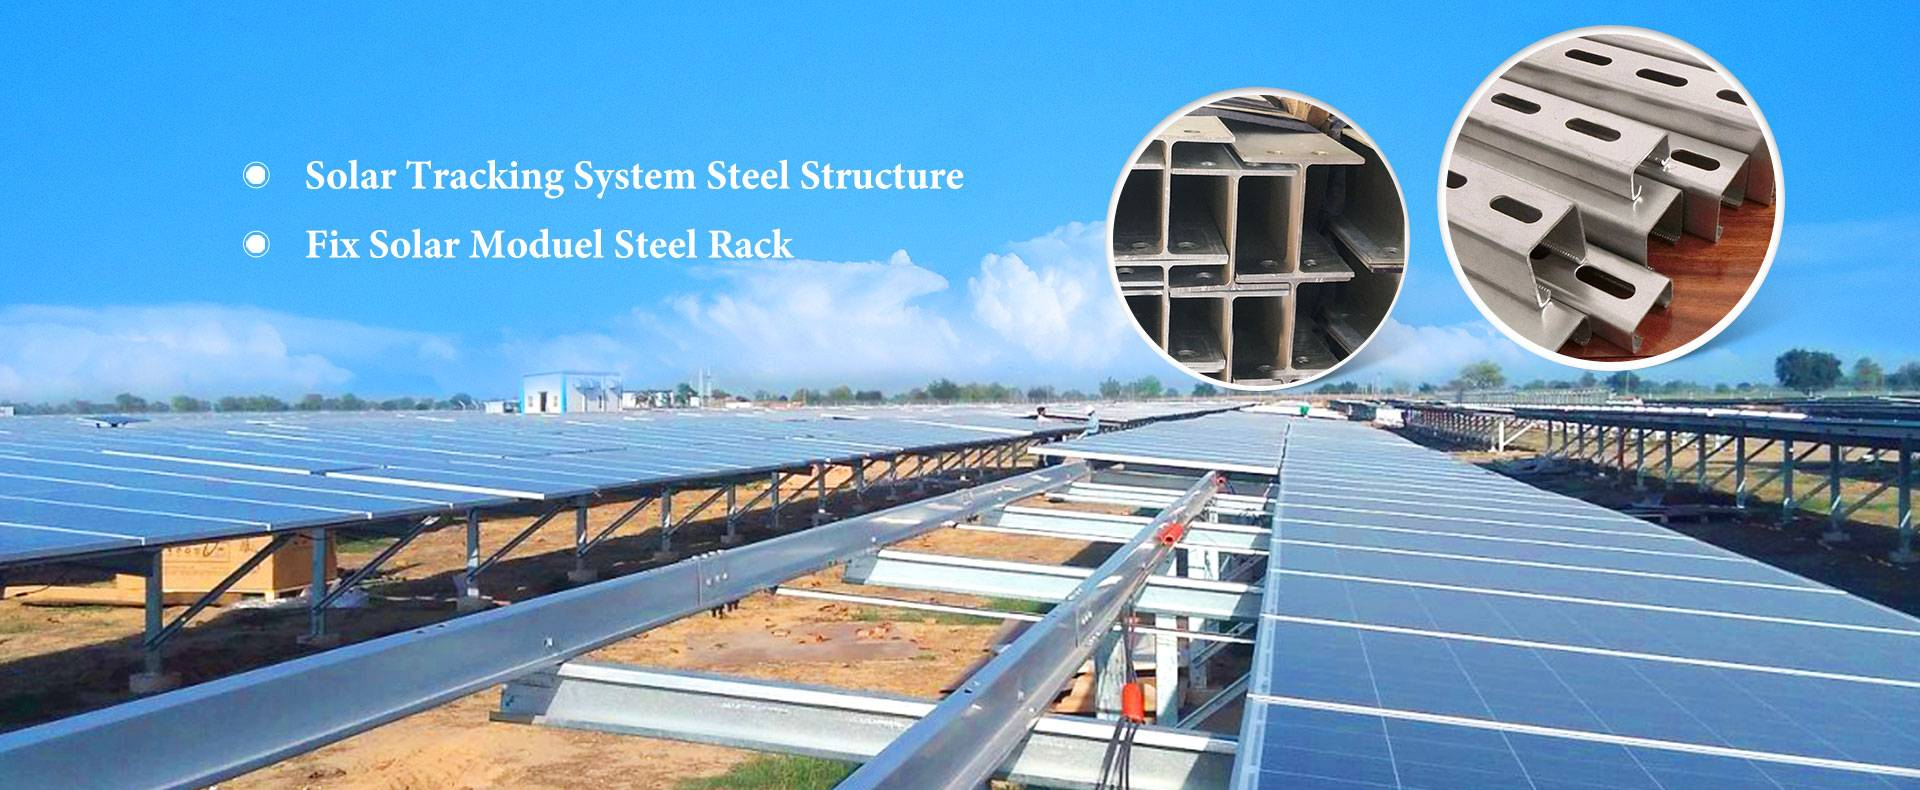 Solar Tracking System Steel Structure